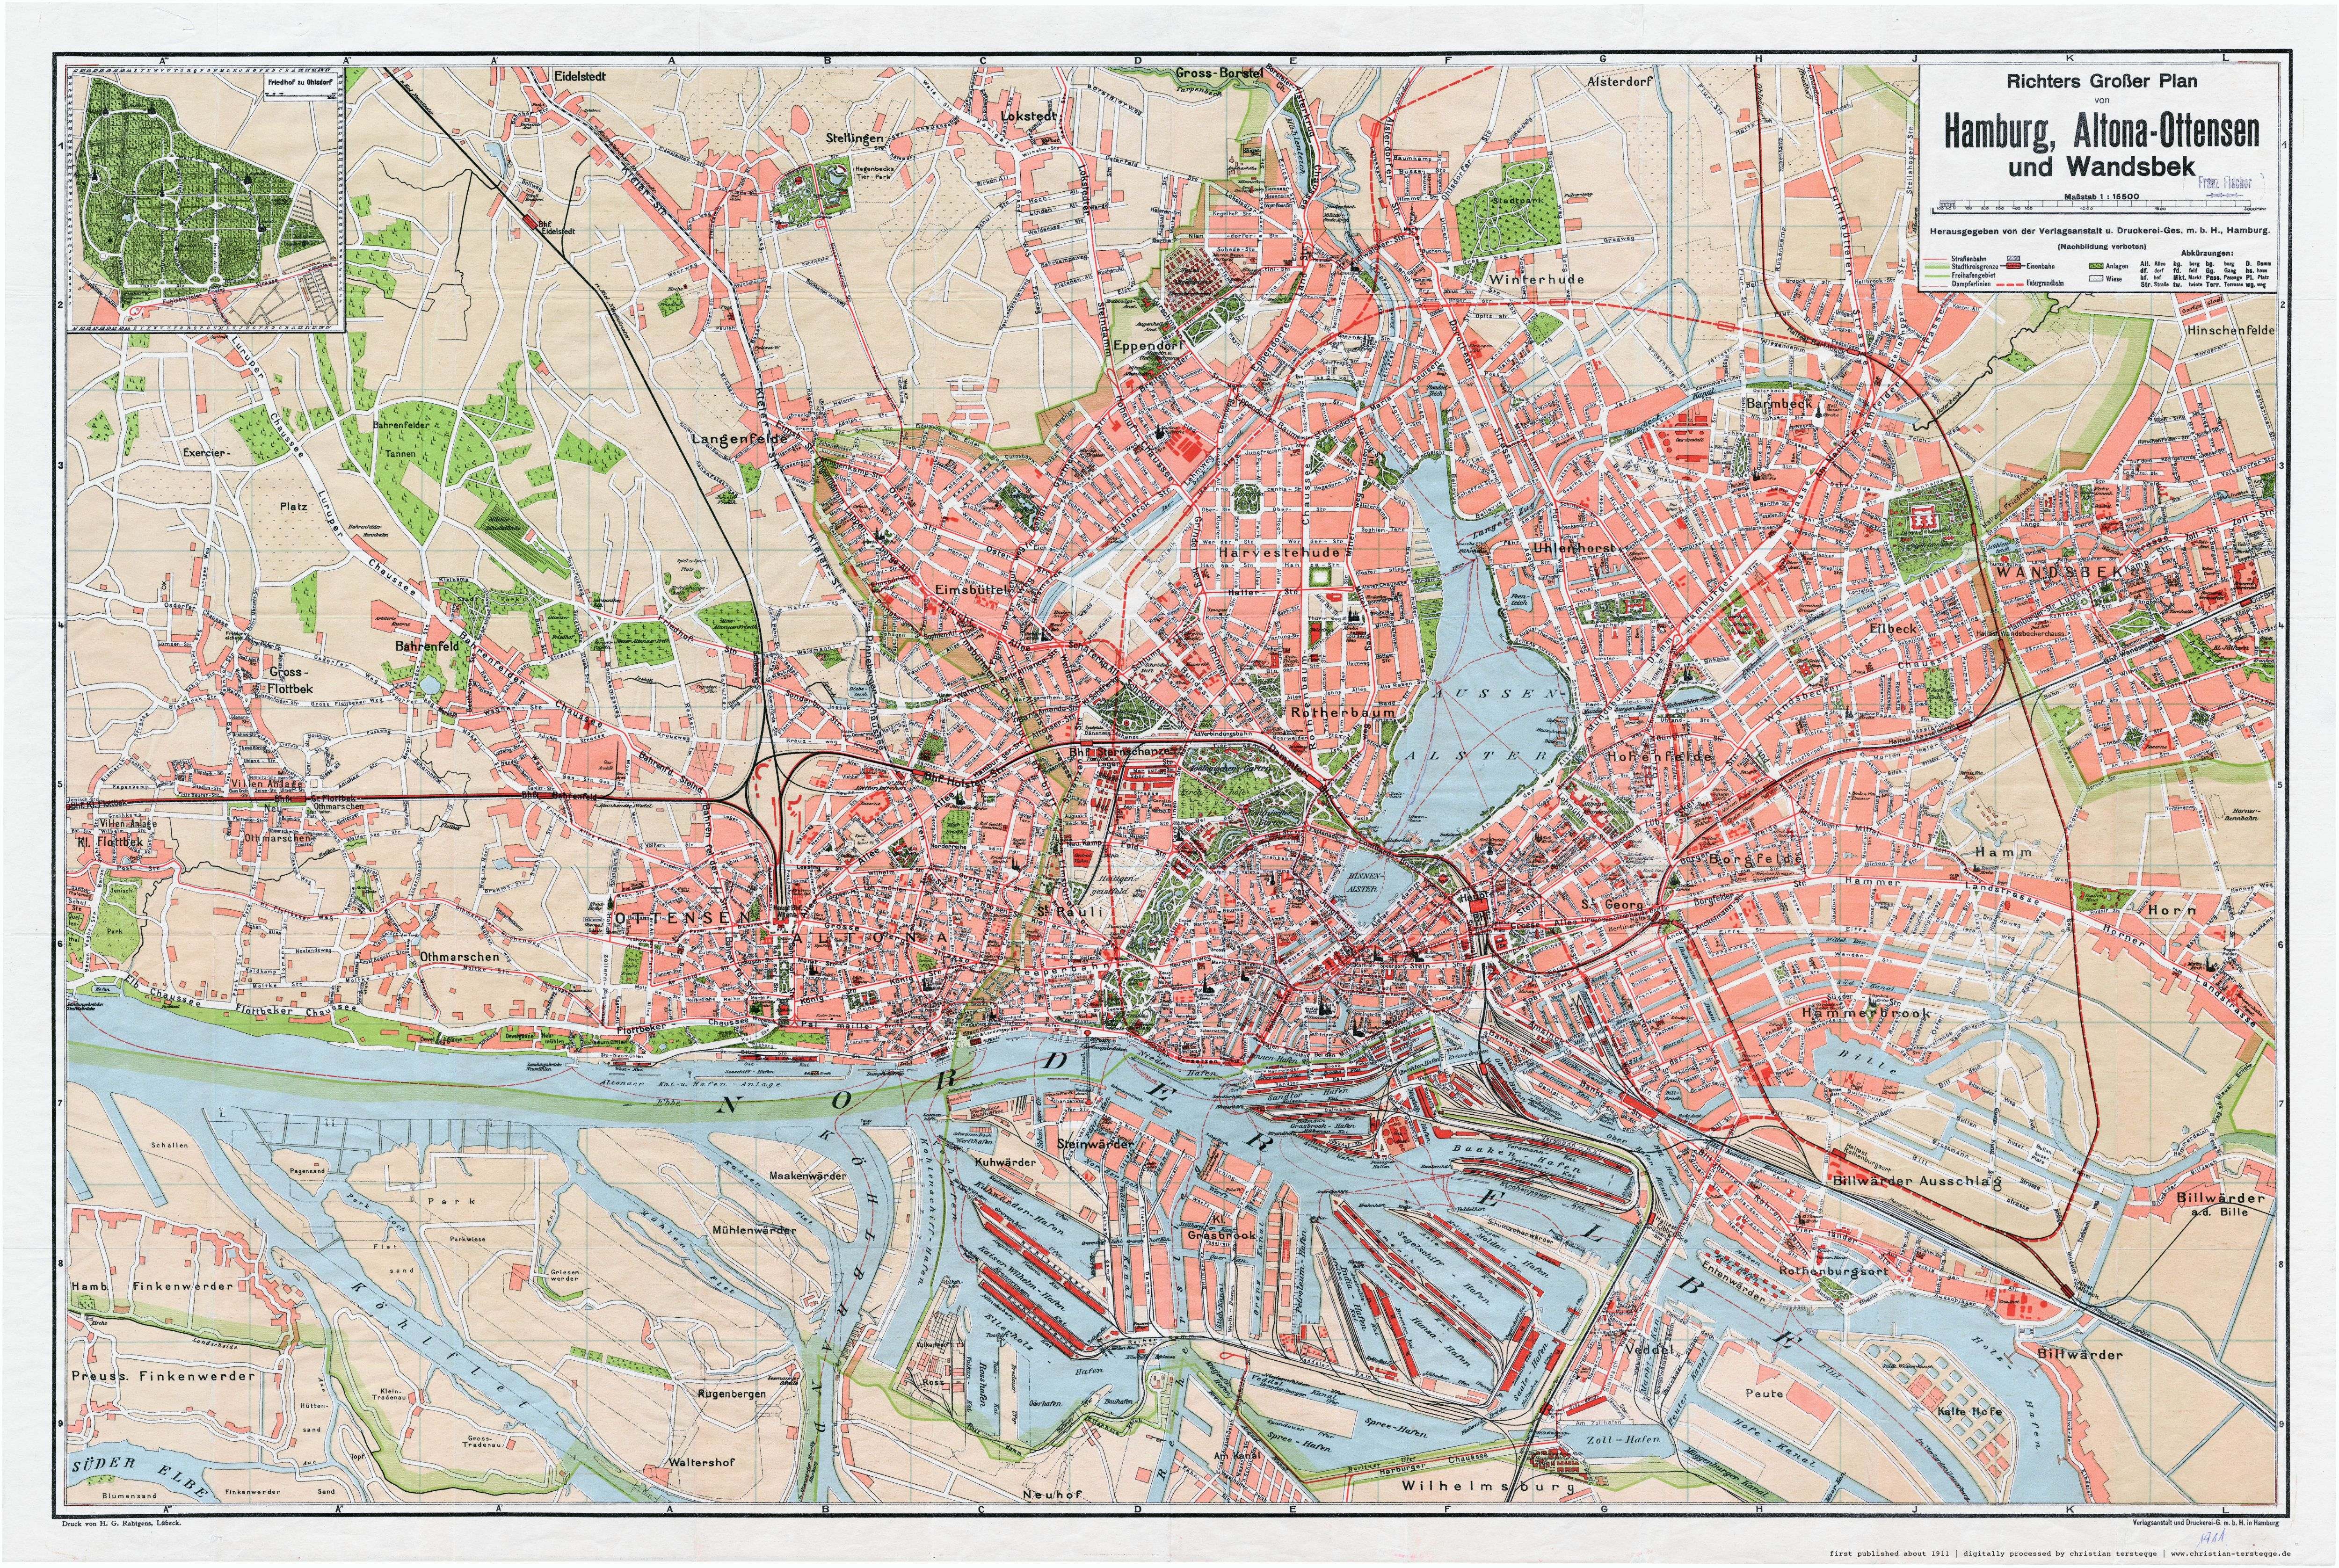 Karte Hamburg 1911 Richters Grosser Plan Von Hamburg Altona